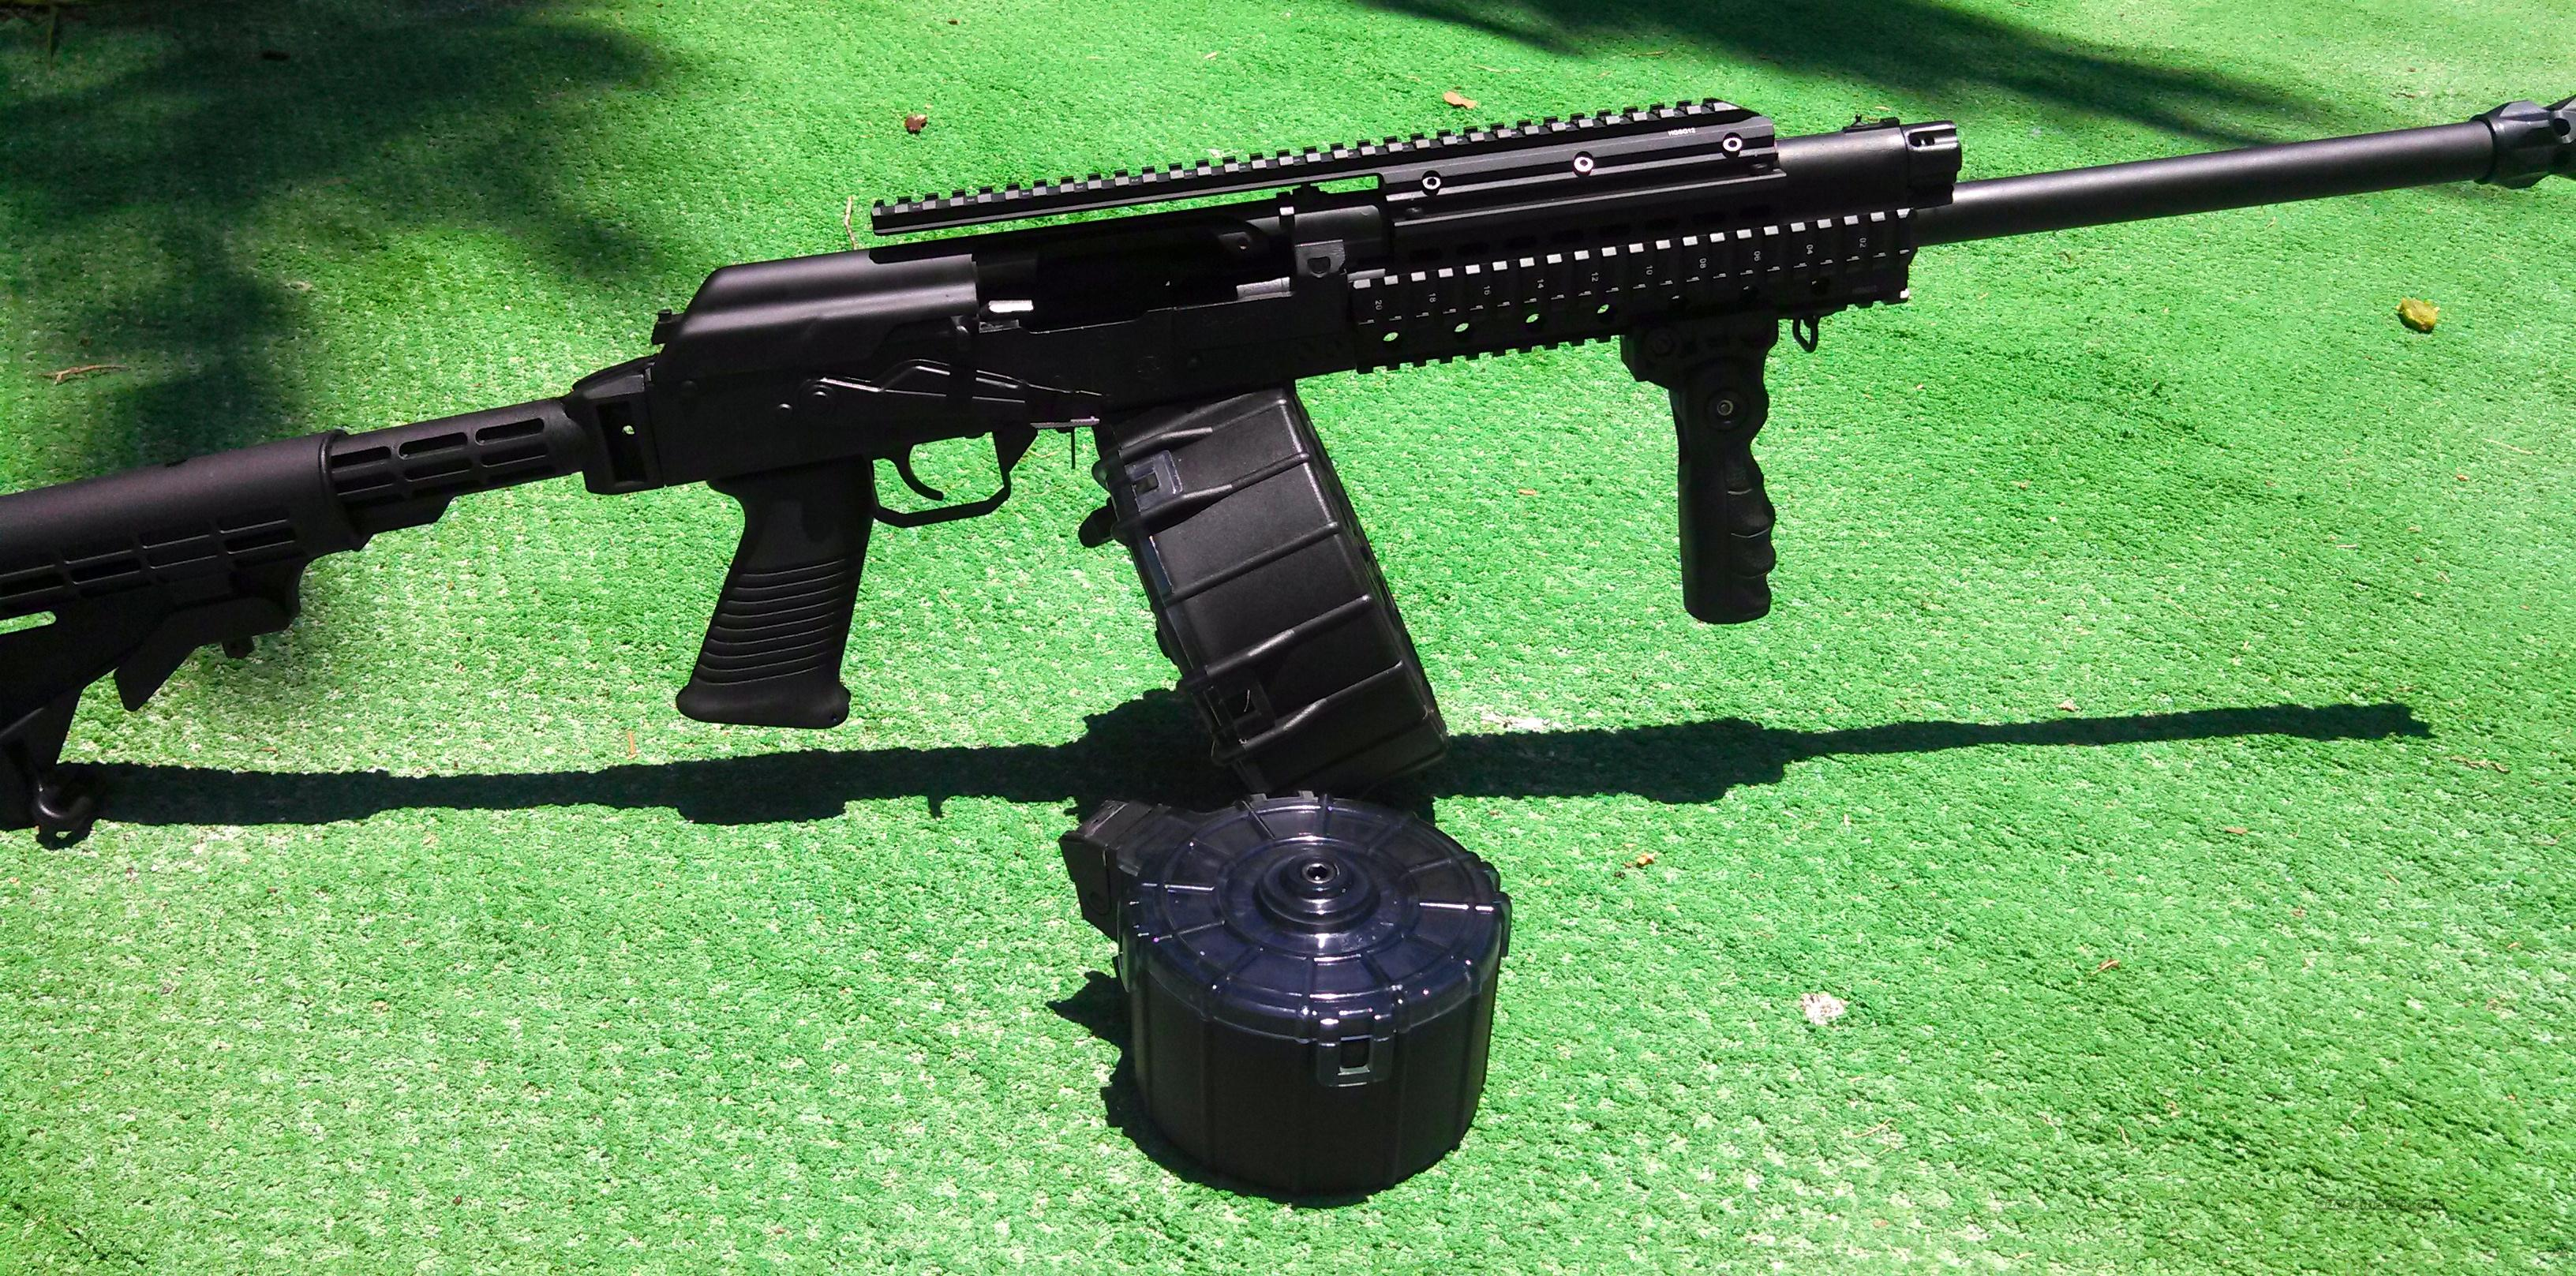 Saiga 12 Presidential Edition Fully Converted Shoots Low Brass ON SALE  Guns > Shotguns > Saiga Shotguns > Shotguns